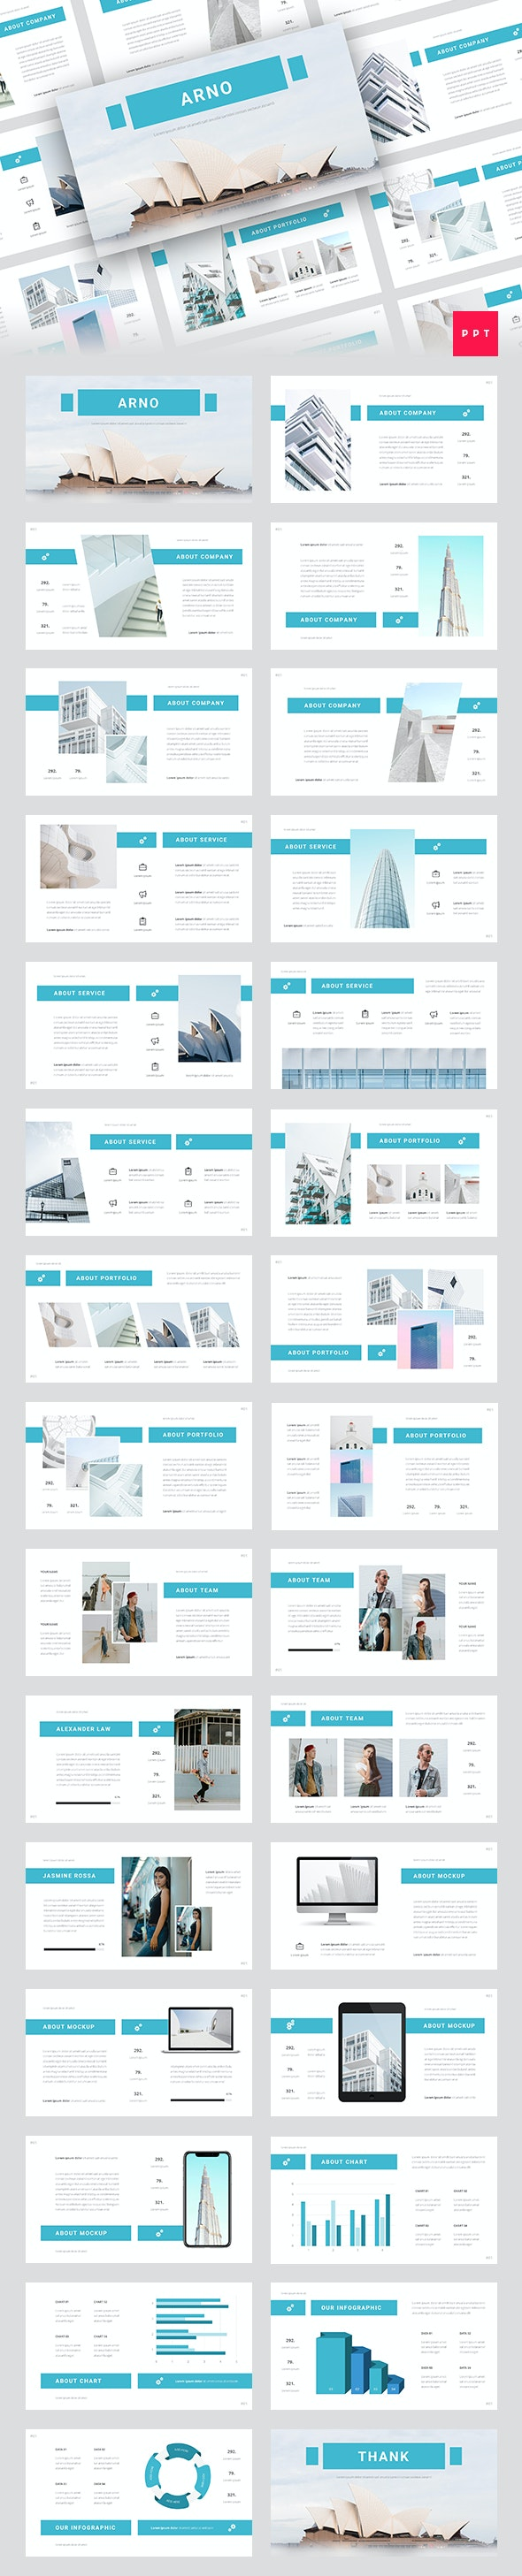 Arno - Architecture PowerPoint Template by StringLabs | GraphicRiver